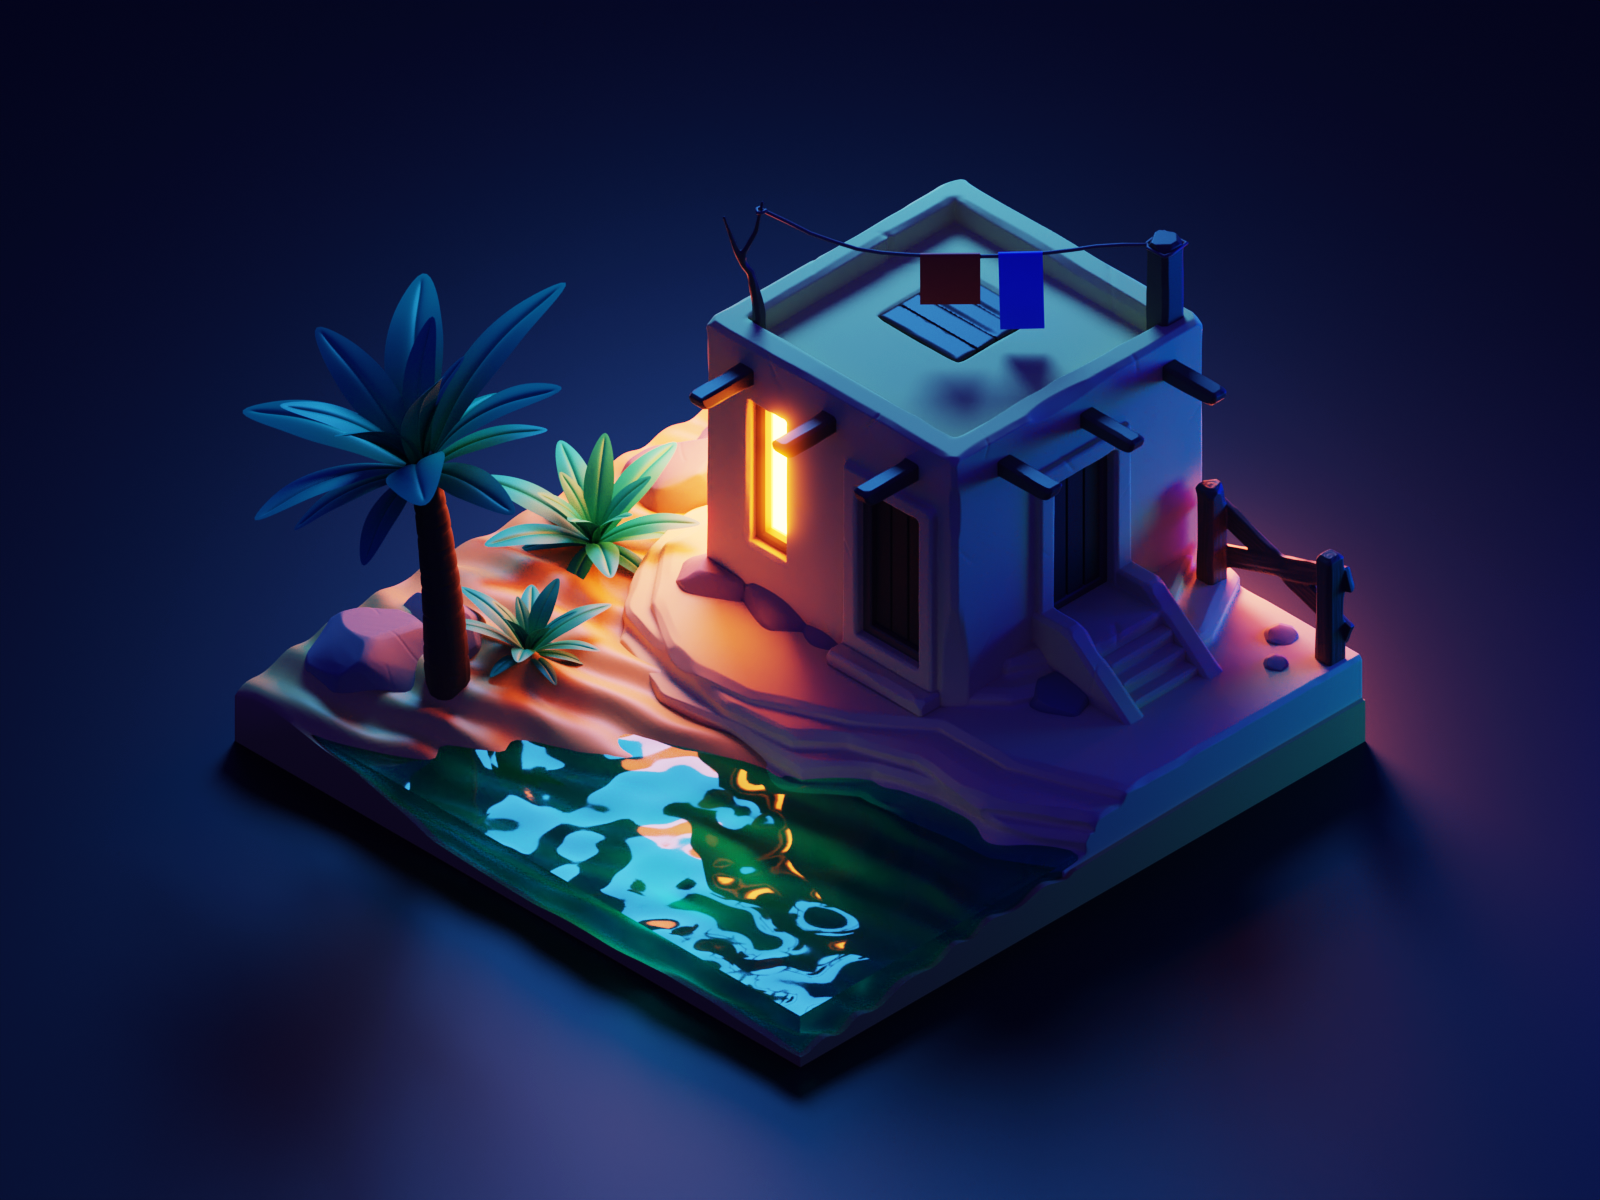 Night Oasis night desert oasis diorama isometric blender illustration 3d